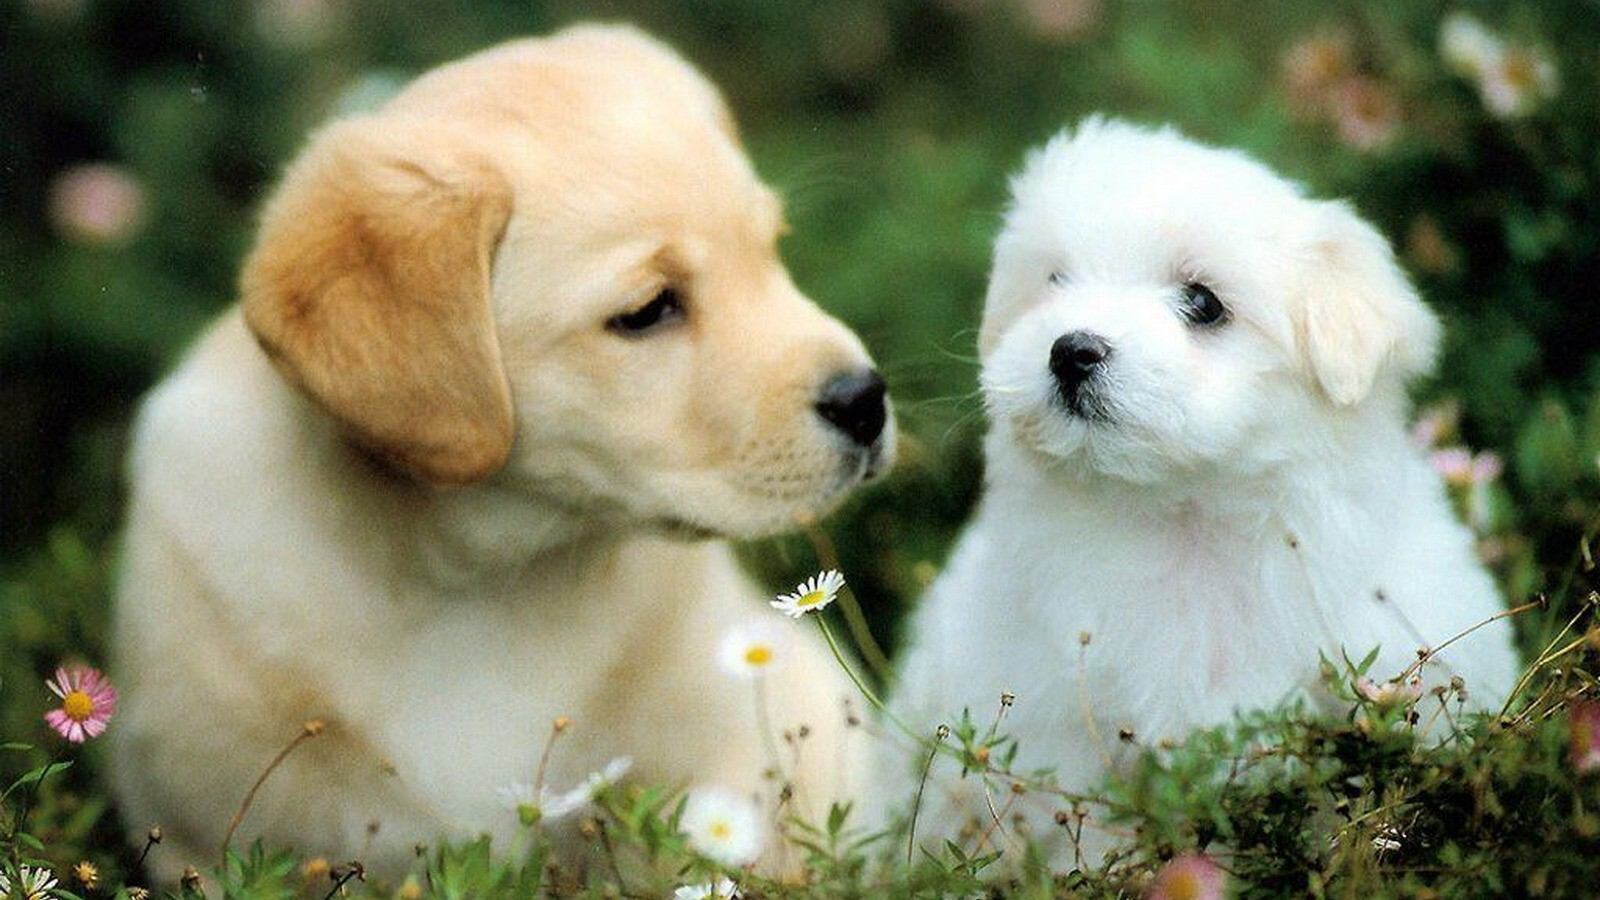 2 lovely dog puppy | hd wallpapers